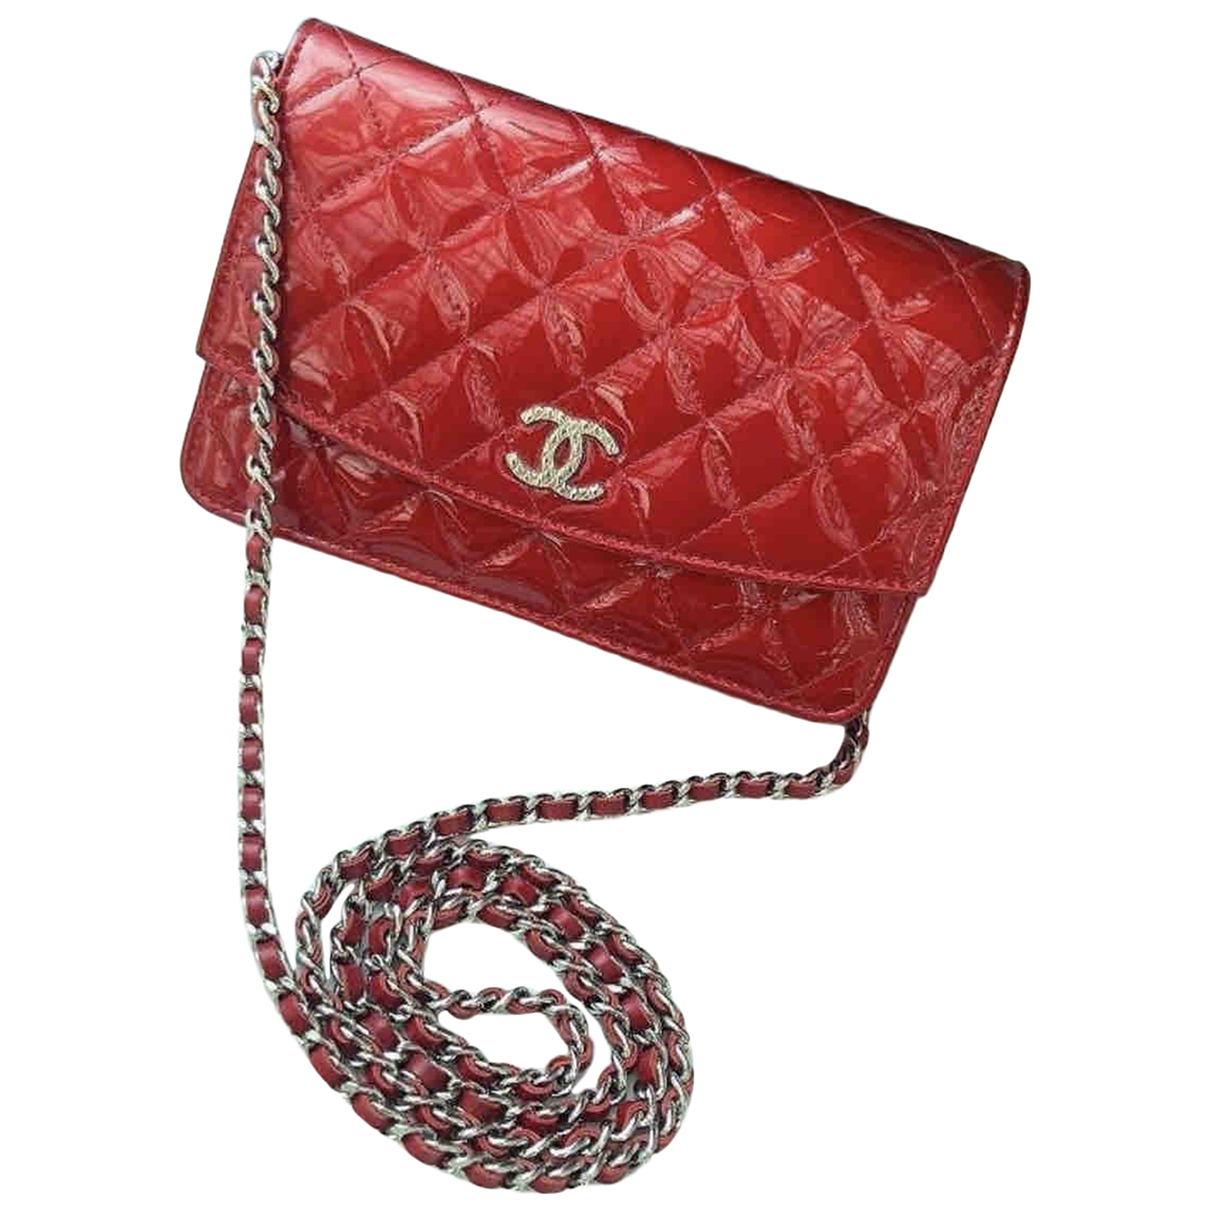 Chanel Wallet on Chain Red Patent leather handbag for Women N